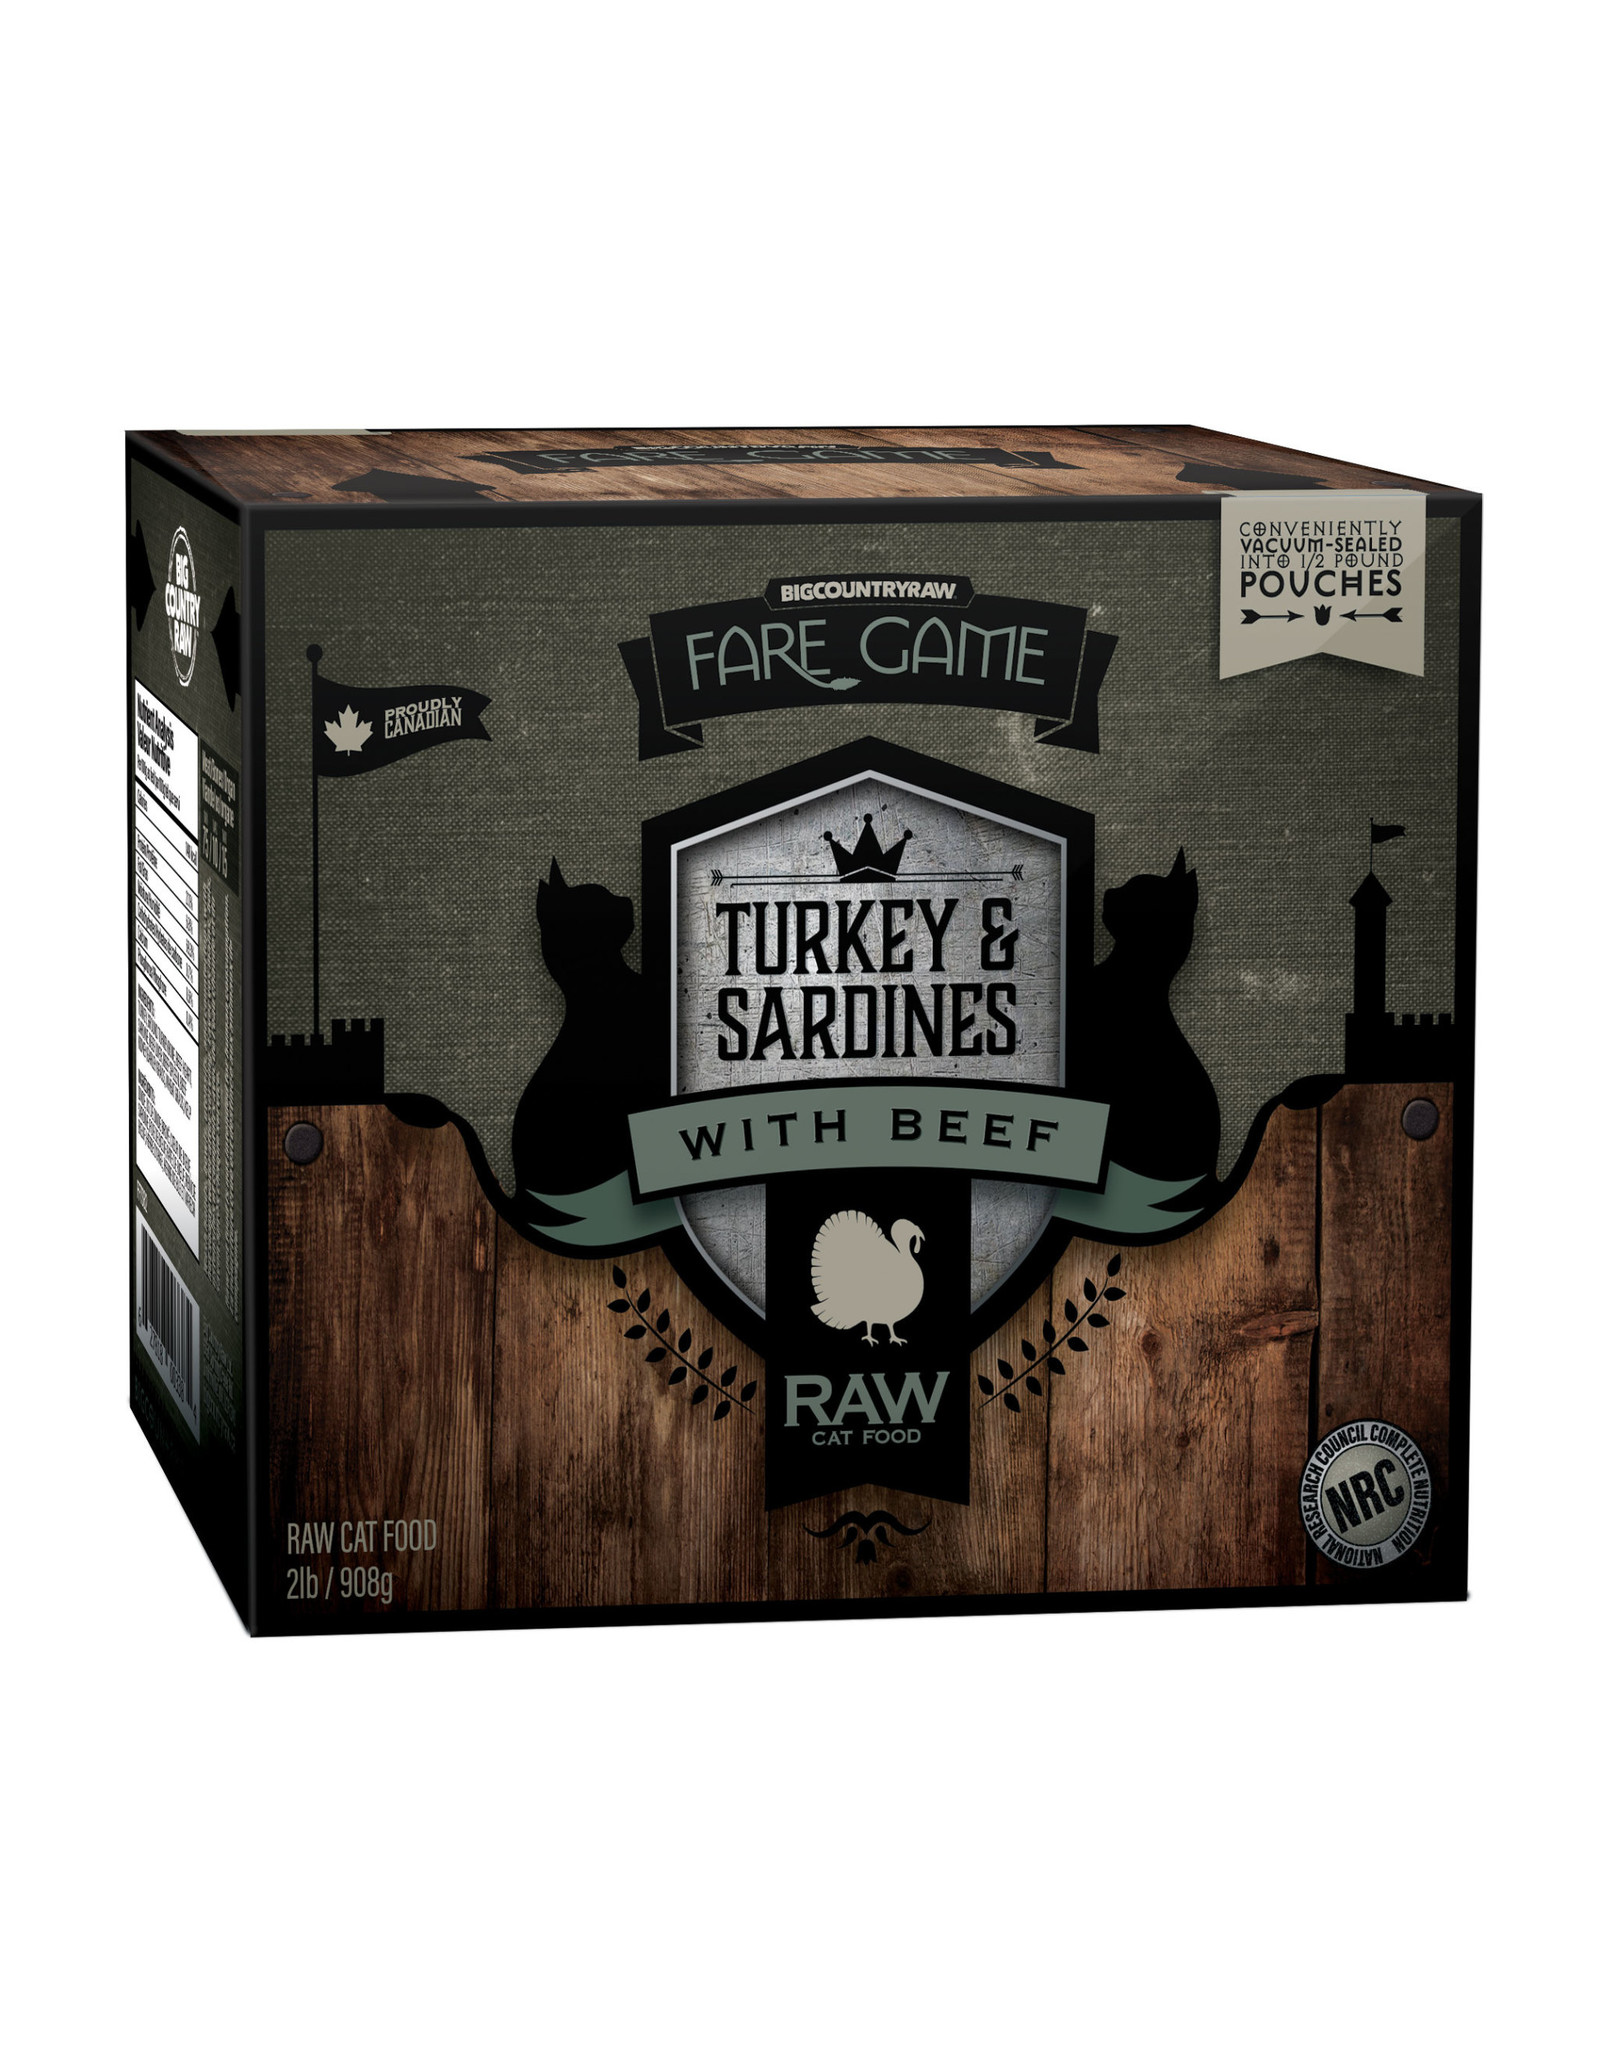 Big Country Raw Fare Game Turkey & Sardines With Beef 2lb